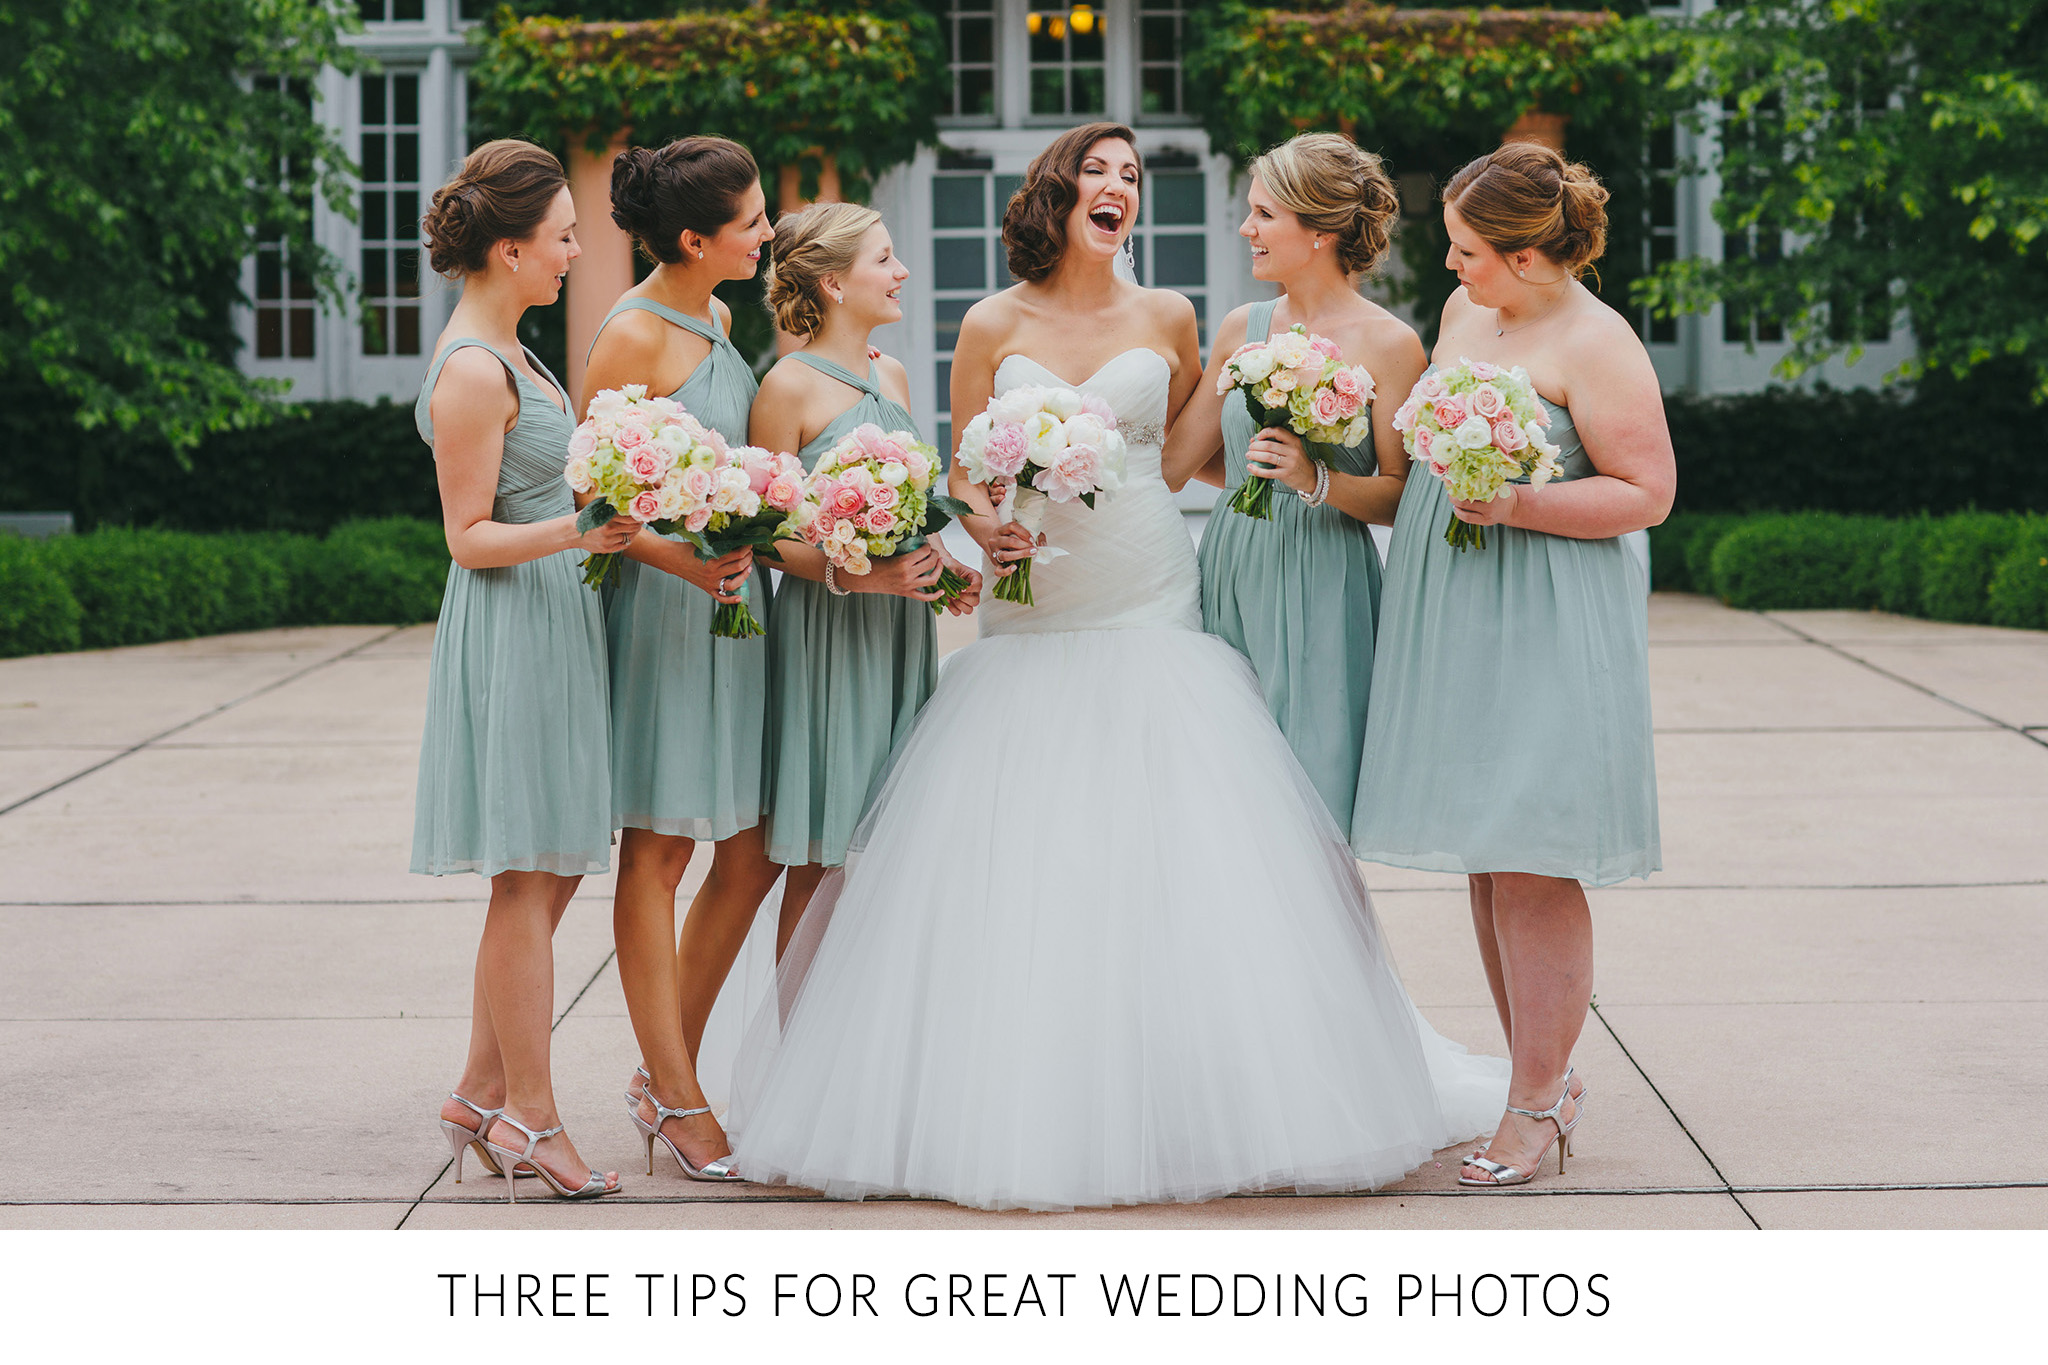 3 tips for great wedding photos